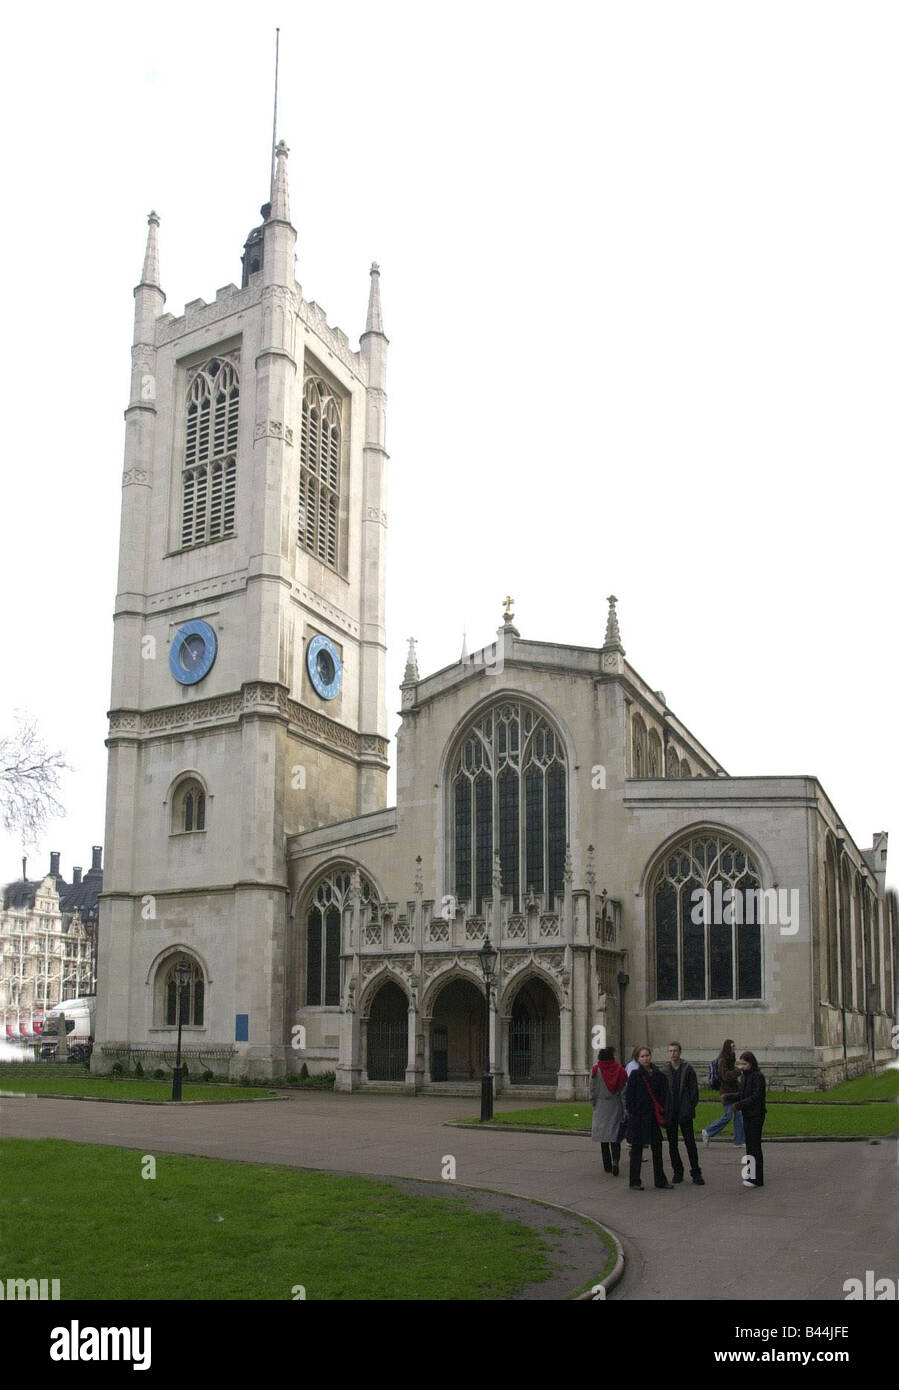 St Margaret Church Westminster March 2002 Mirrorpix - Stock Image